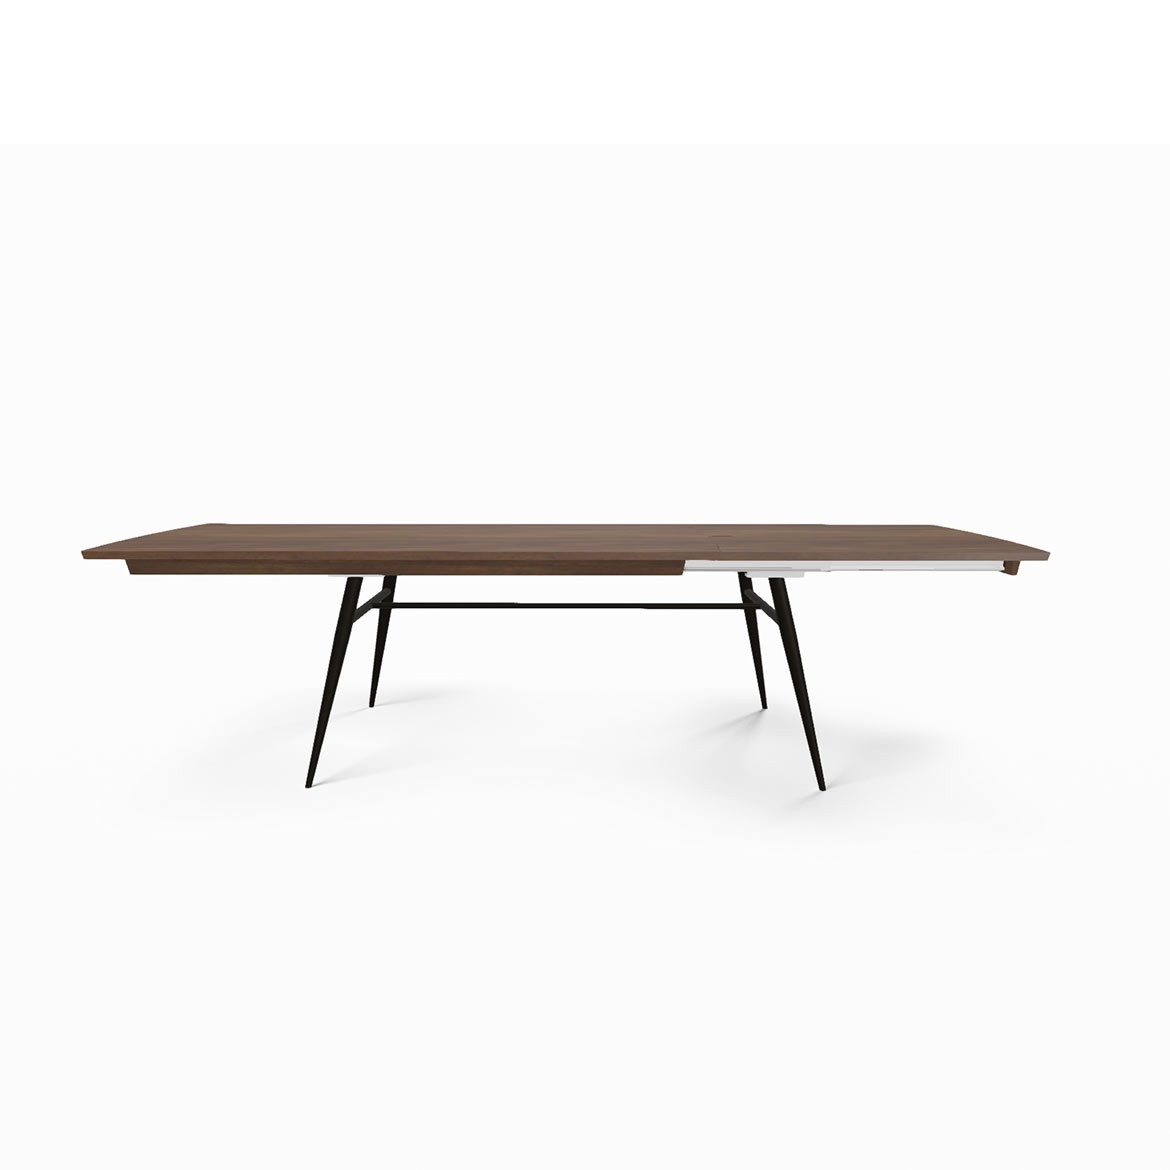 Tate walnut + metal extending dining table